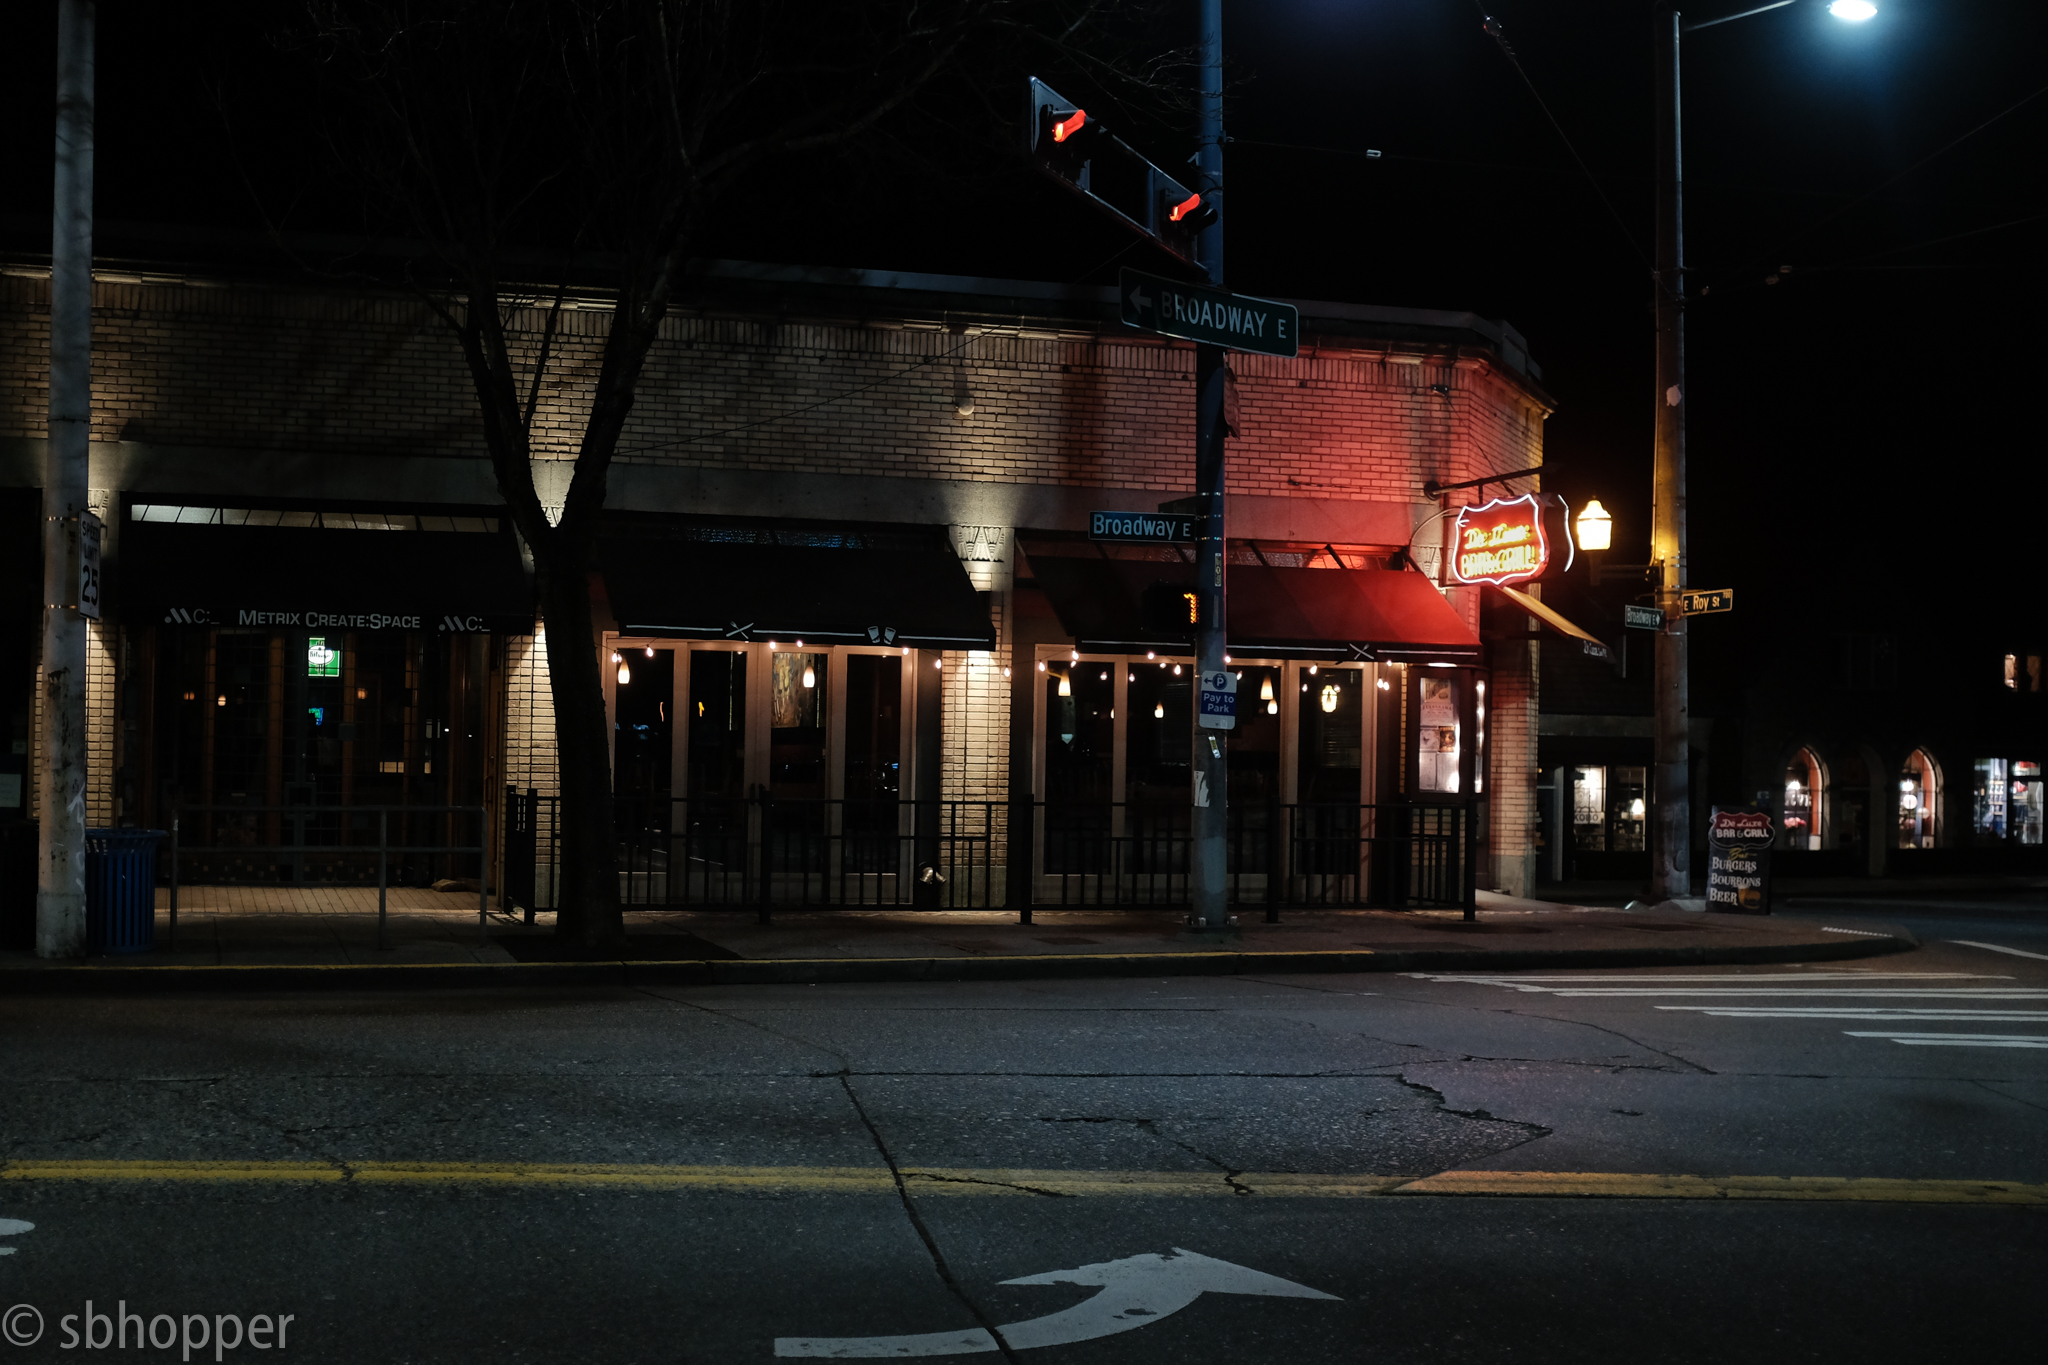 DeLuxe Bar and Grill, Capitol Hill, Seattle, March 2018. Auto Transform (leveling) in Lightroom.